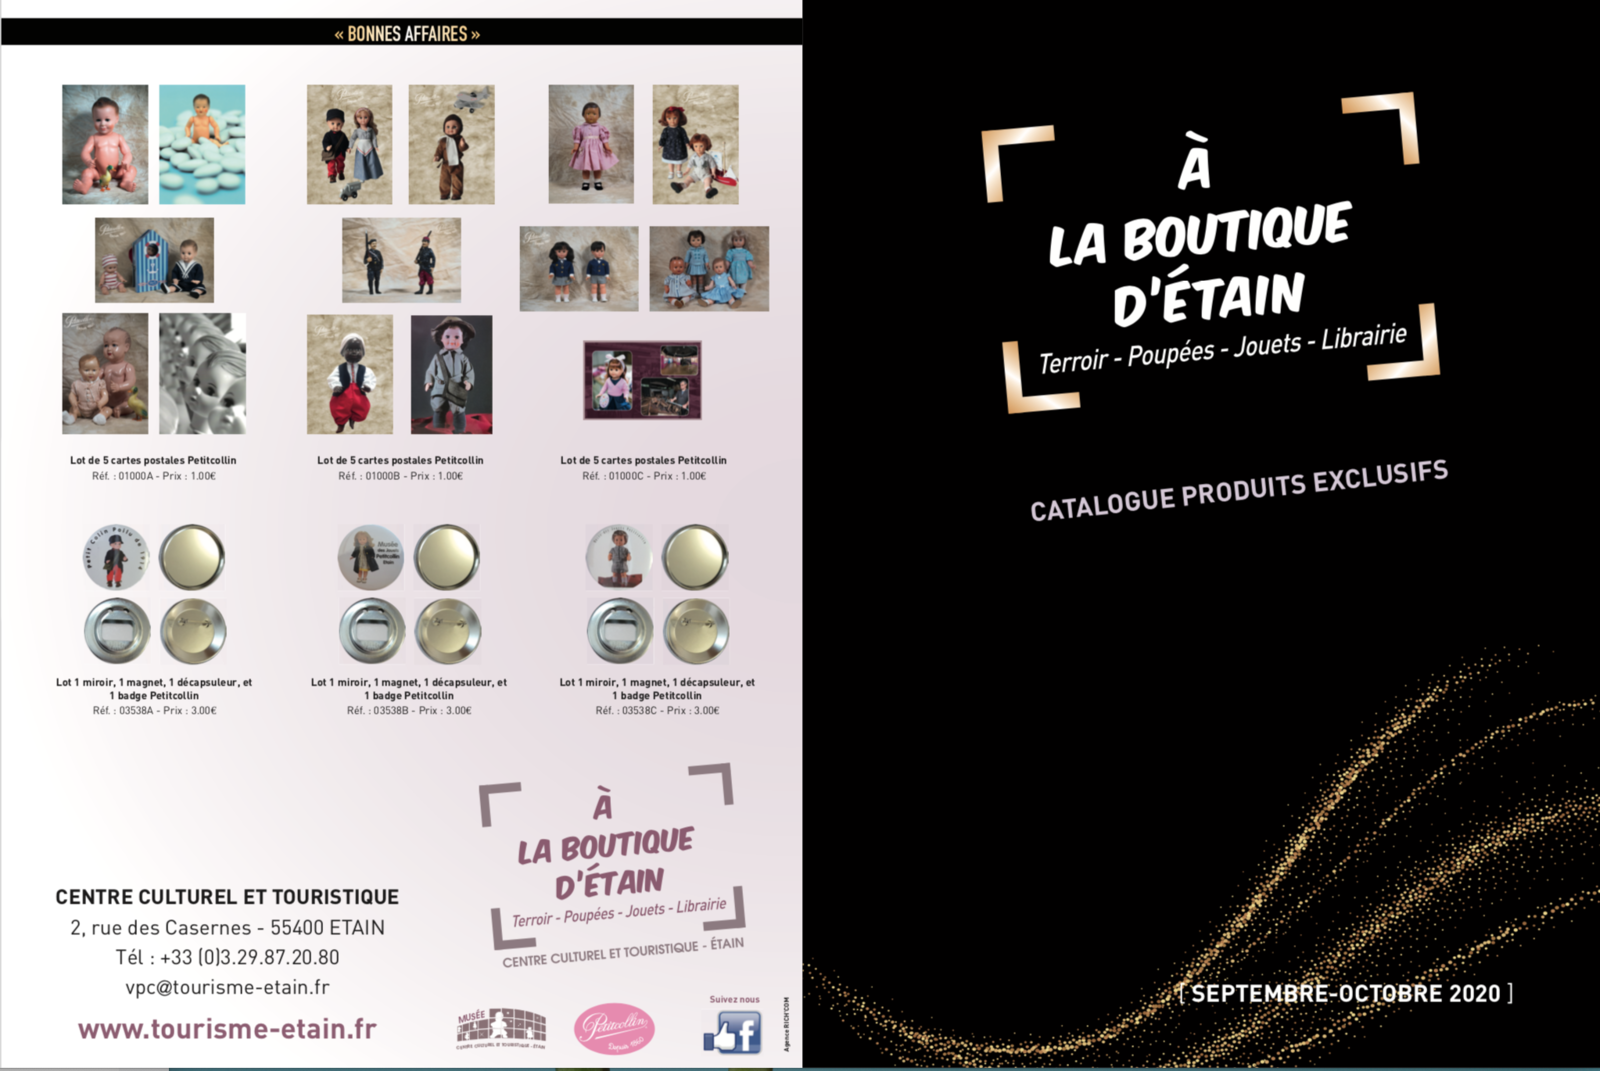 Catalogue A la boutique d'Etain • Septembre-octobre 2020